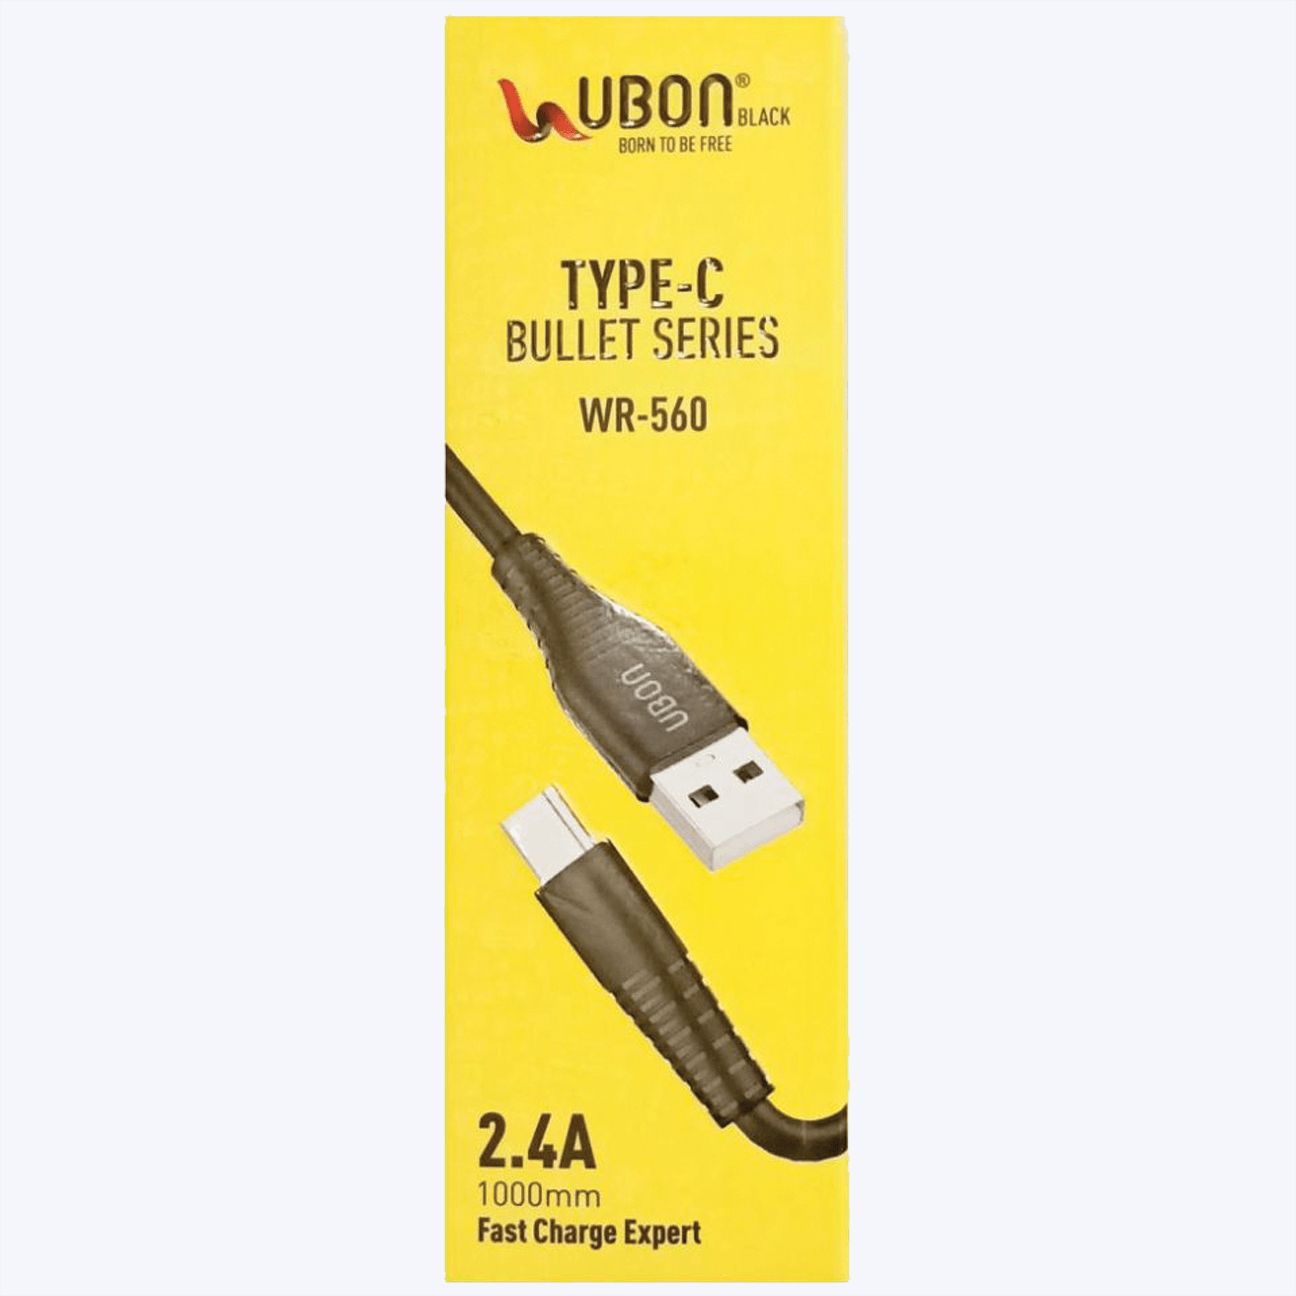 UBON WR-560 Type-C Cable 2.4A Super Fast Charging